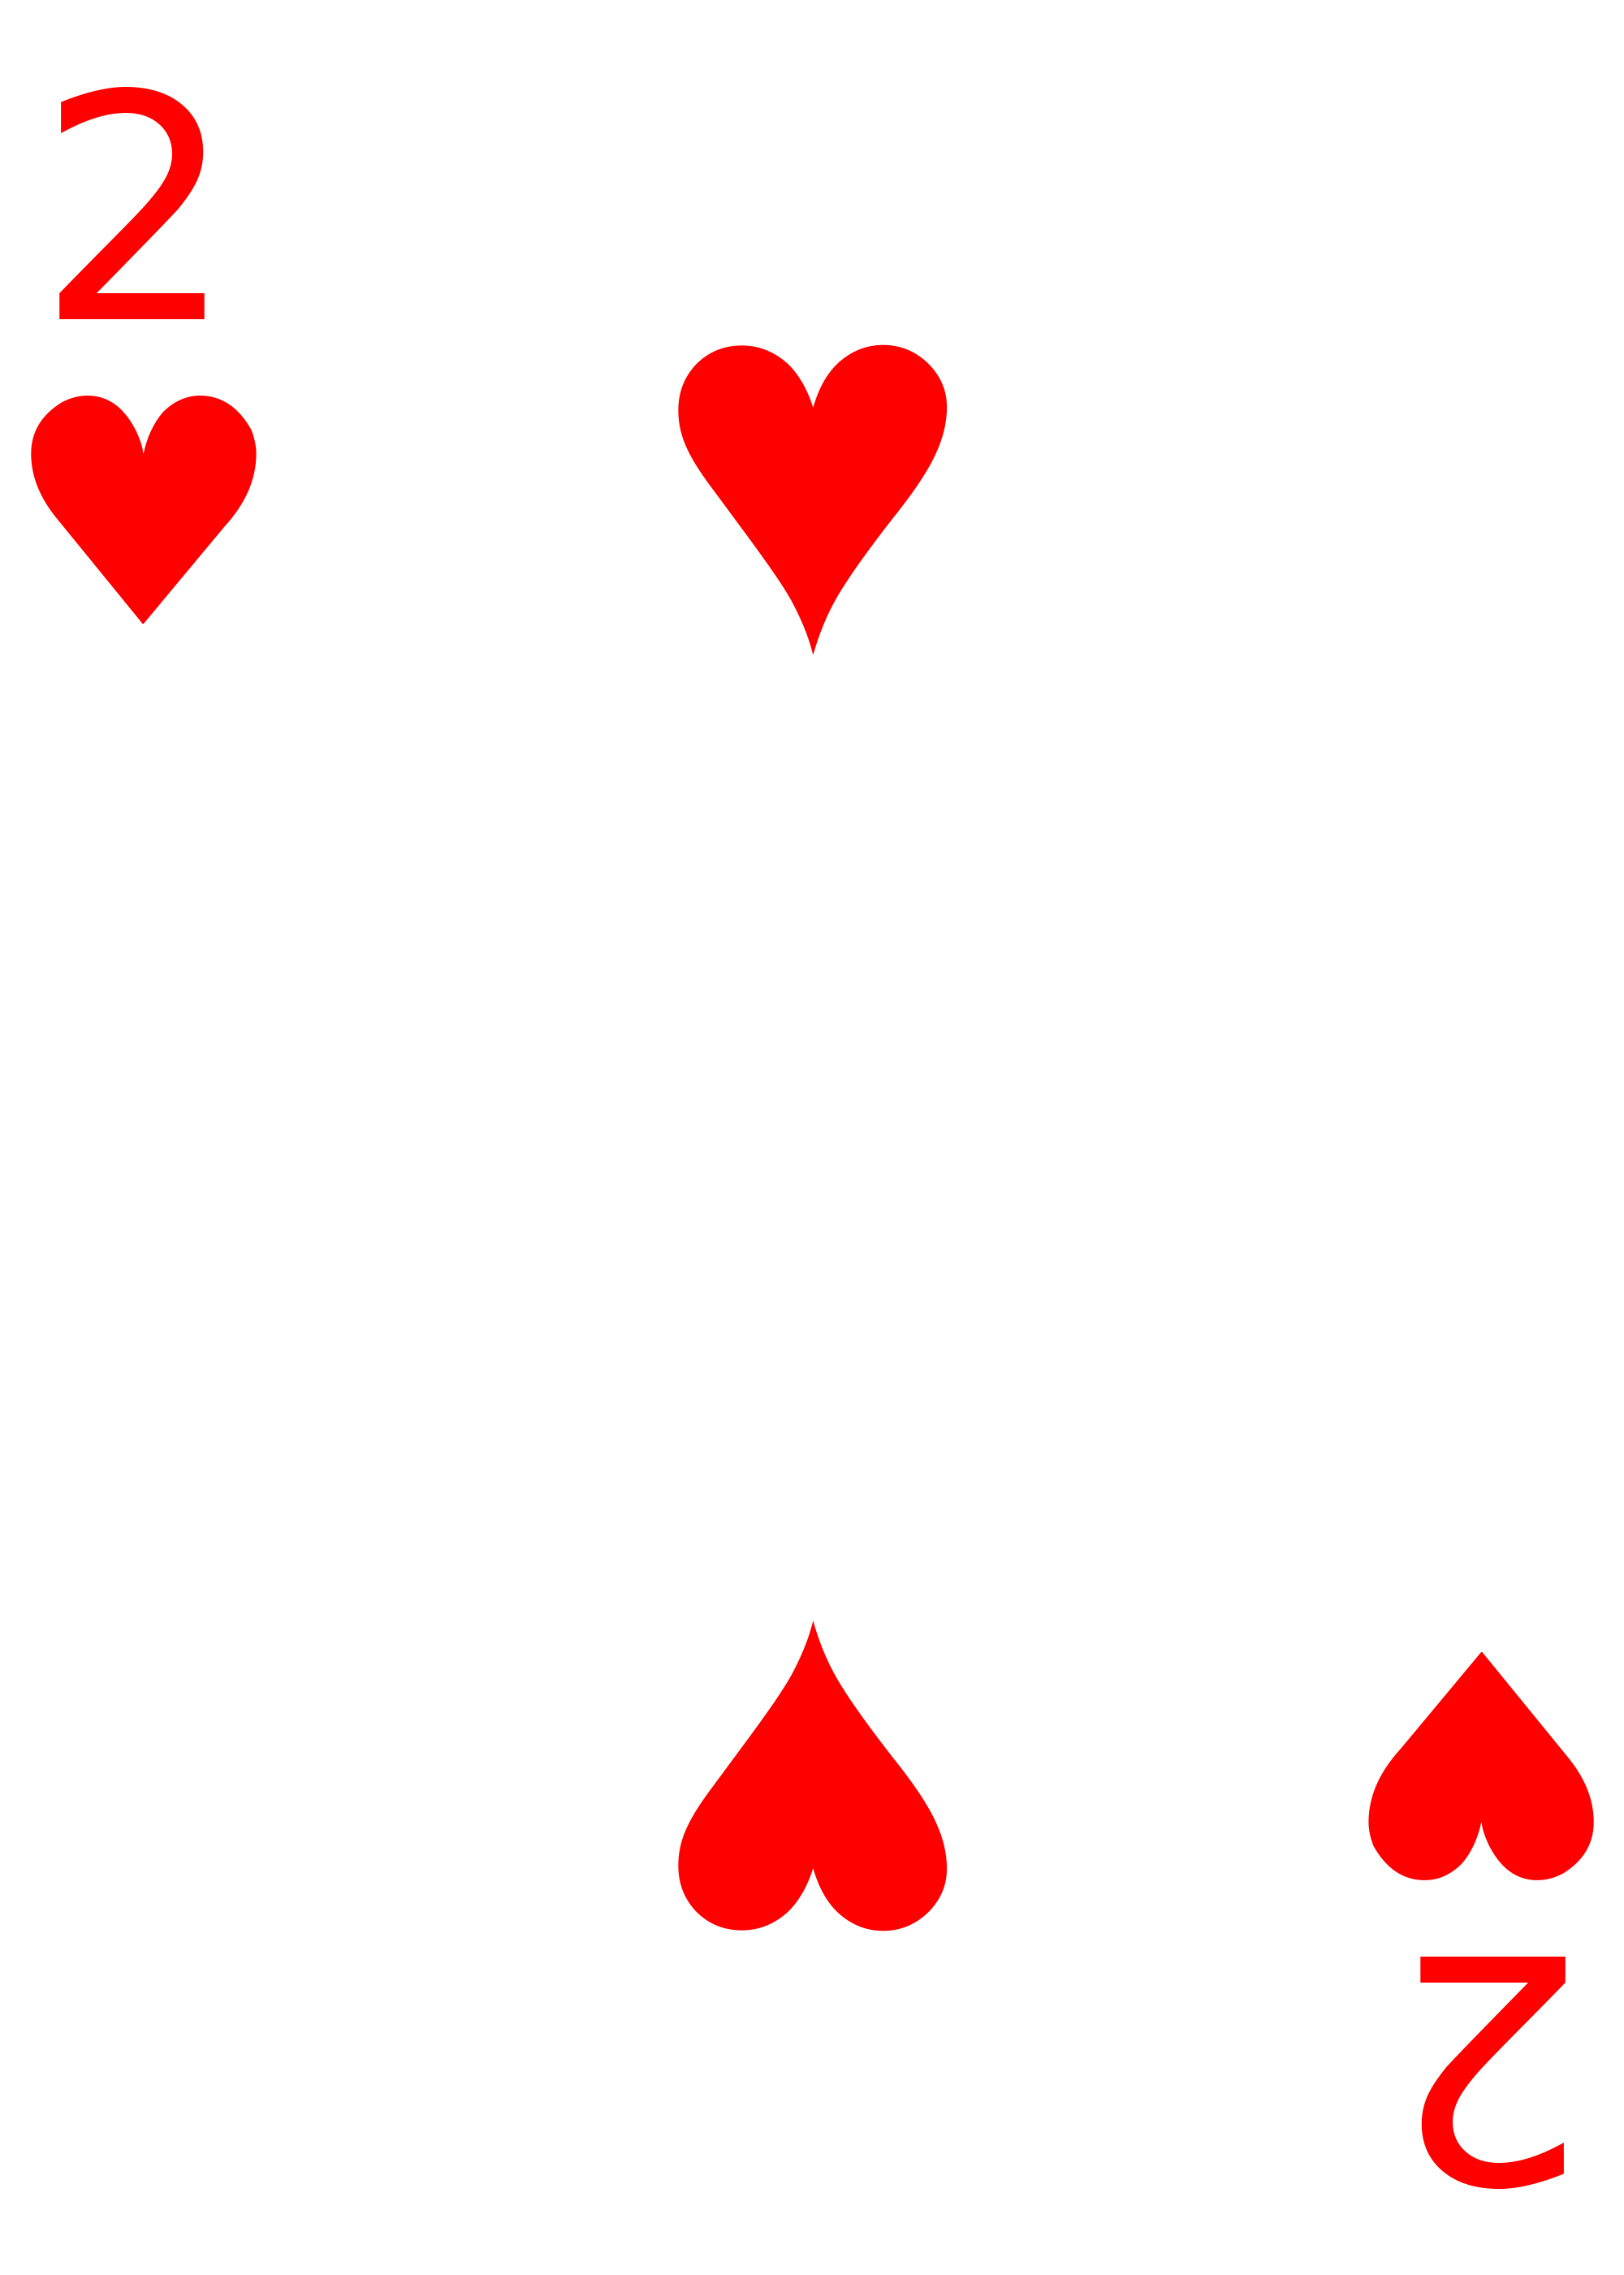 Cards 2 of hearts png. File heart svg wikimedia